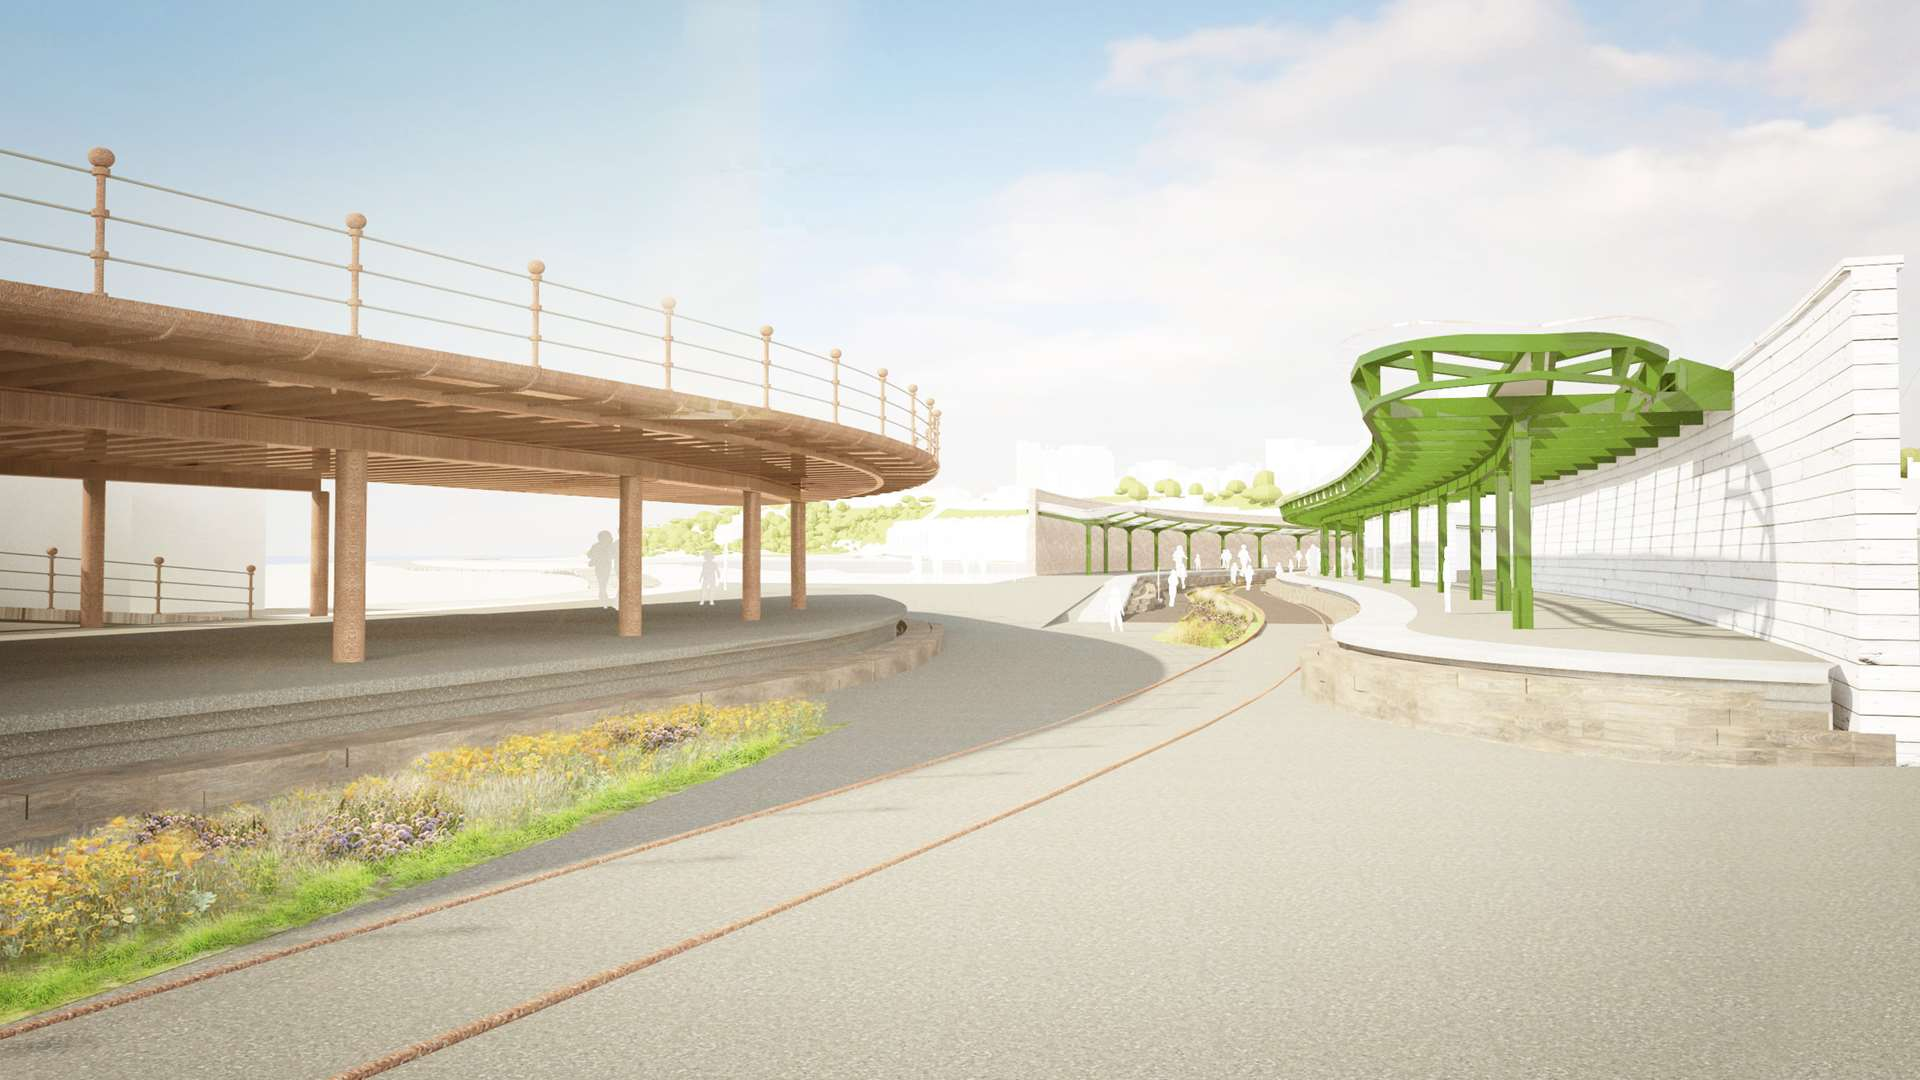 The work will start in the next few weeks and connect the harbour to the town centre with a walkway over the old railway line. Picture: Folkestone Harbour Company